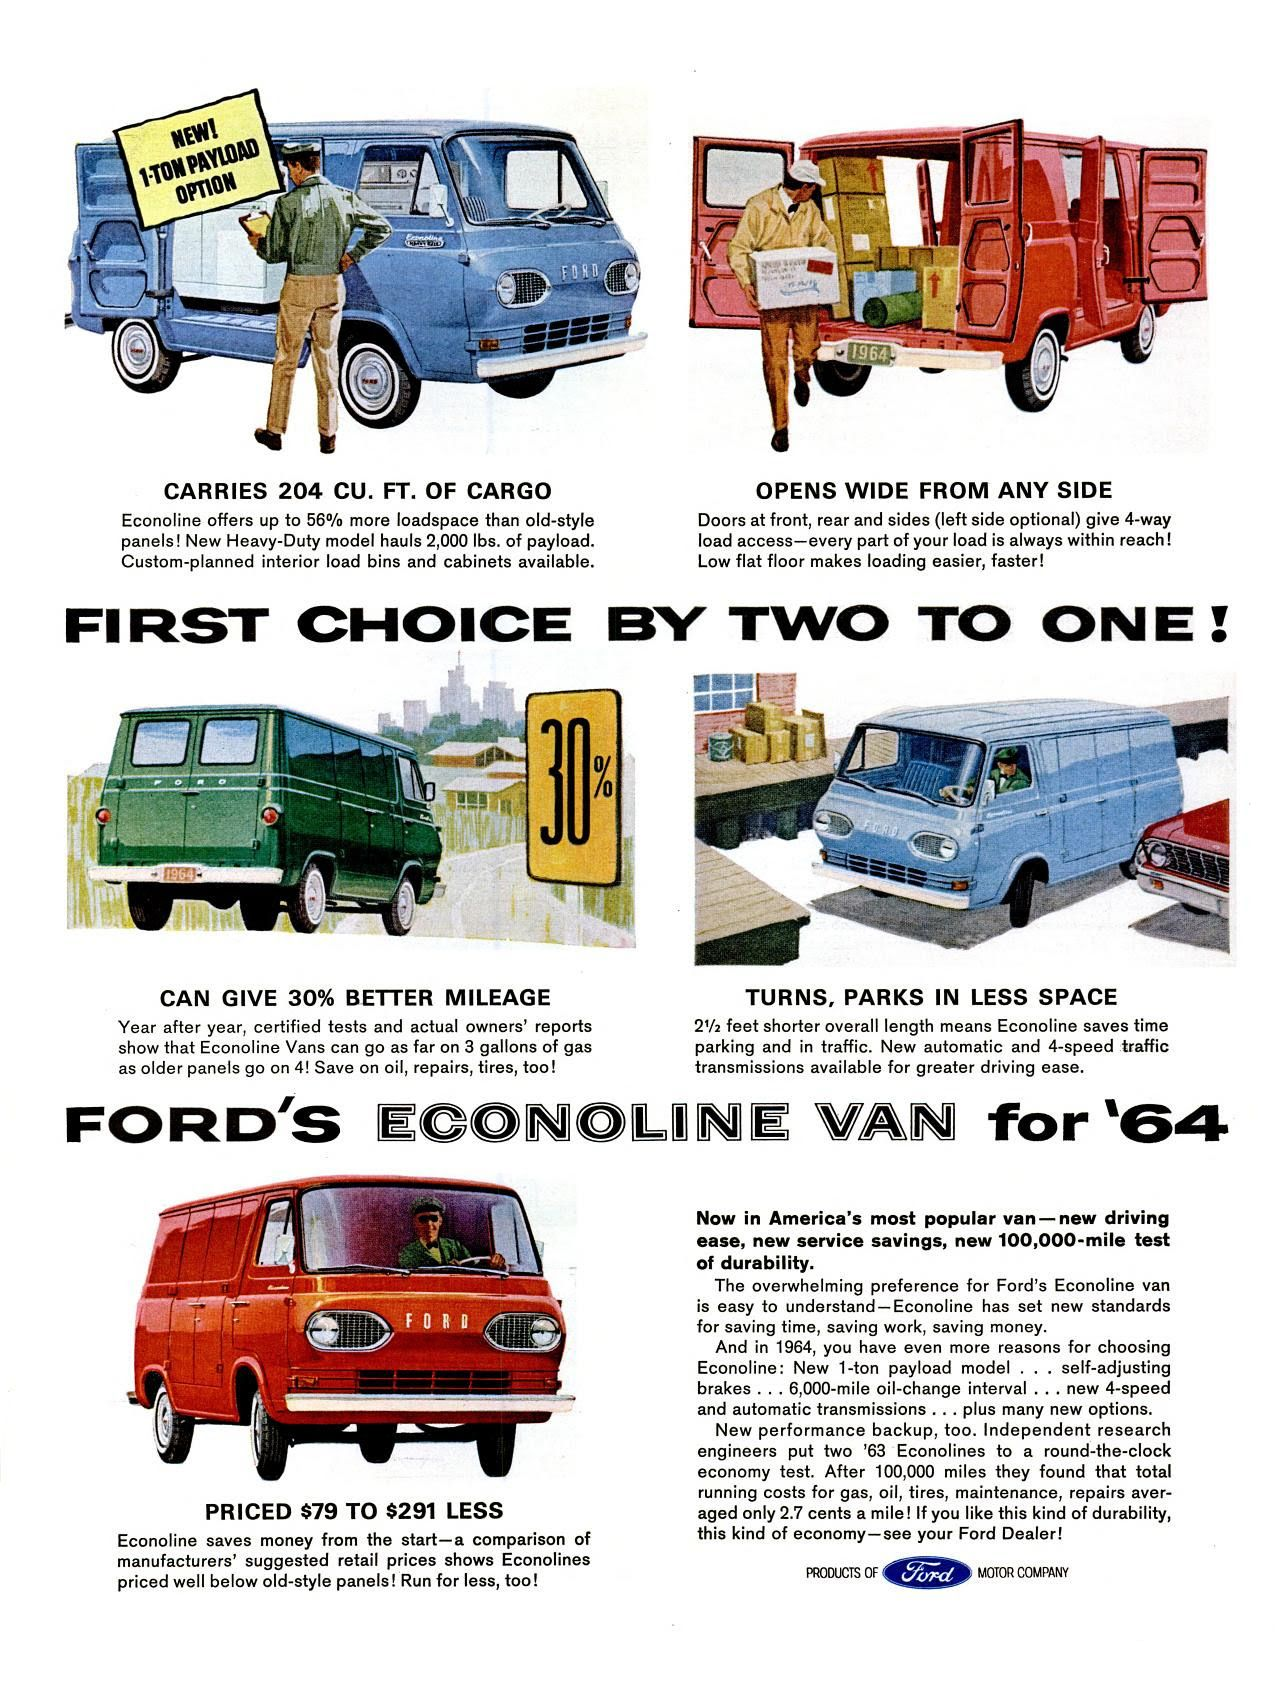 Pin By Chris G On Vintage Car Ads Ford Trucks Ford Van 1964 Ford